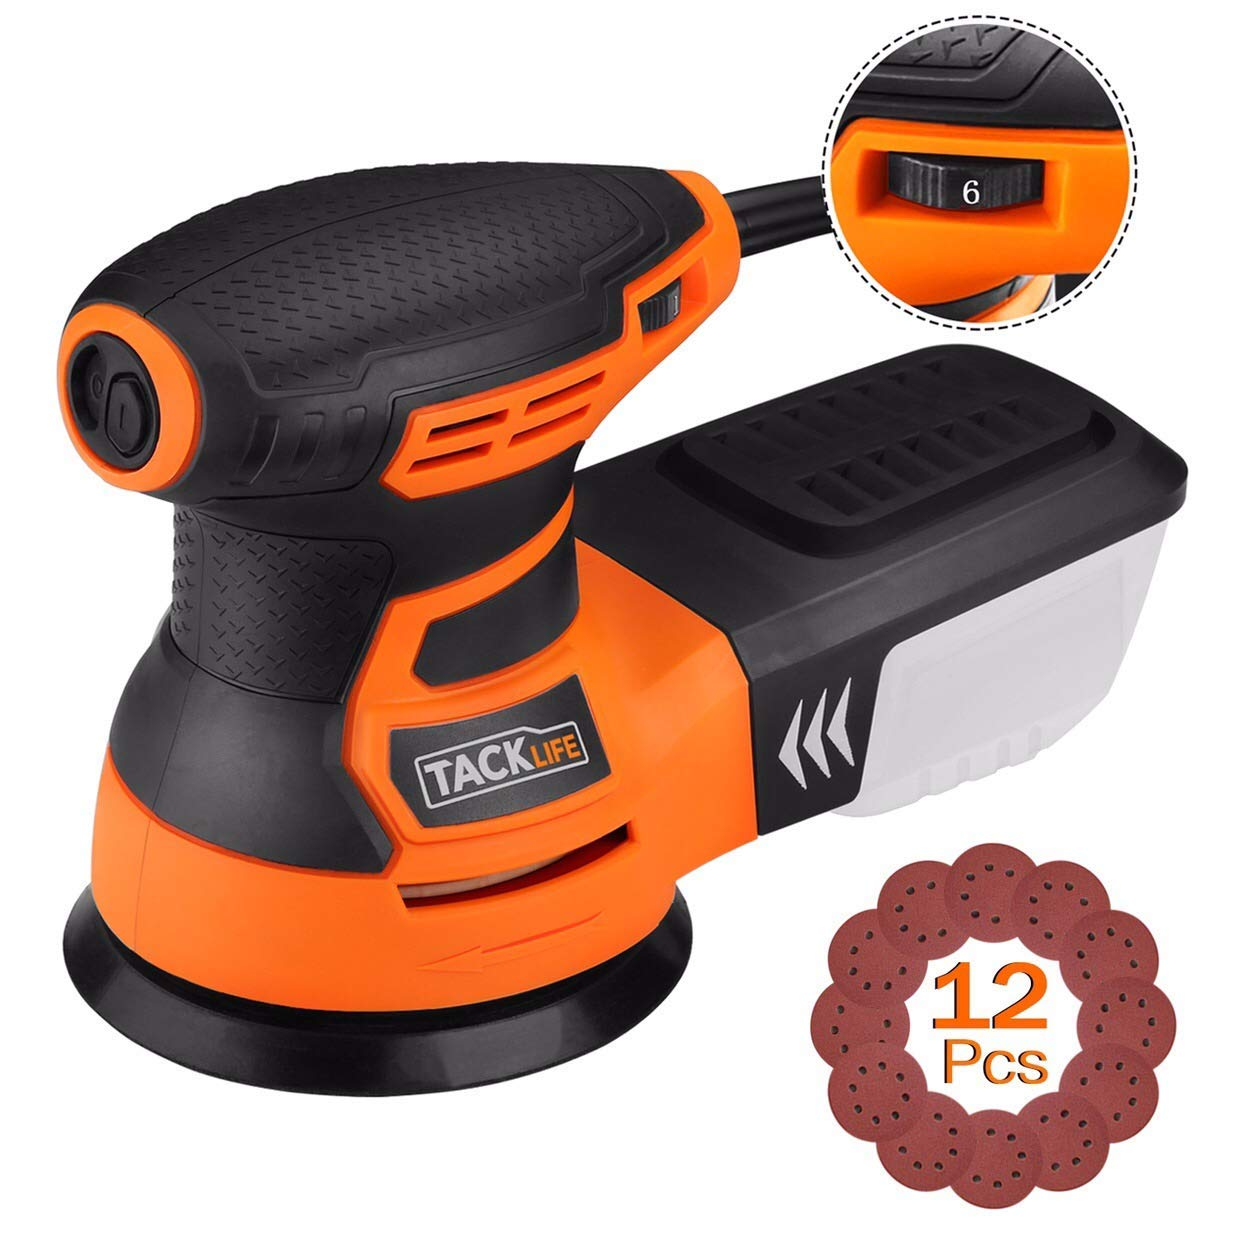 TACKLIFE Orbital Sander, 3.0A 5-Inch Random Orbit Sander with 12Pcs Sandpapers, 6 Variable Speed 13000RPM Electric Sander Machine, High Performance Dust Collection System, Ideal for DIY - PRS01A by TACKLIFE